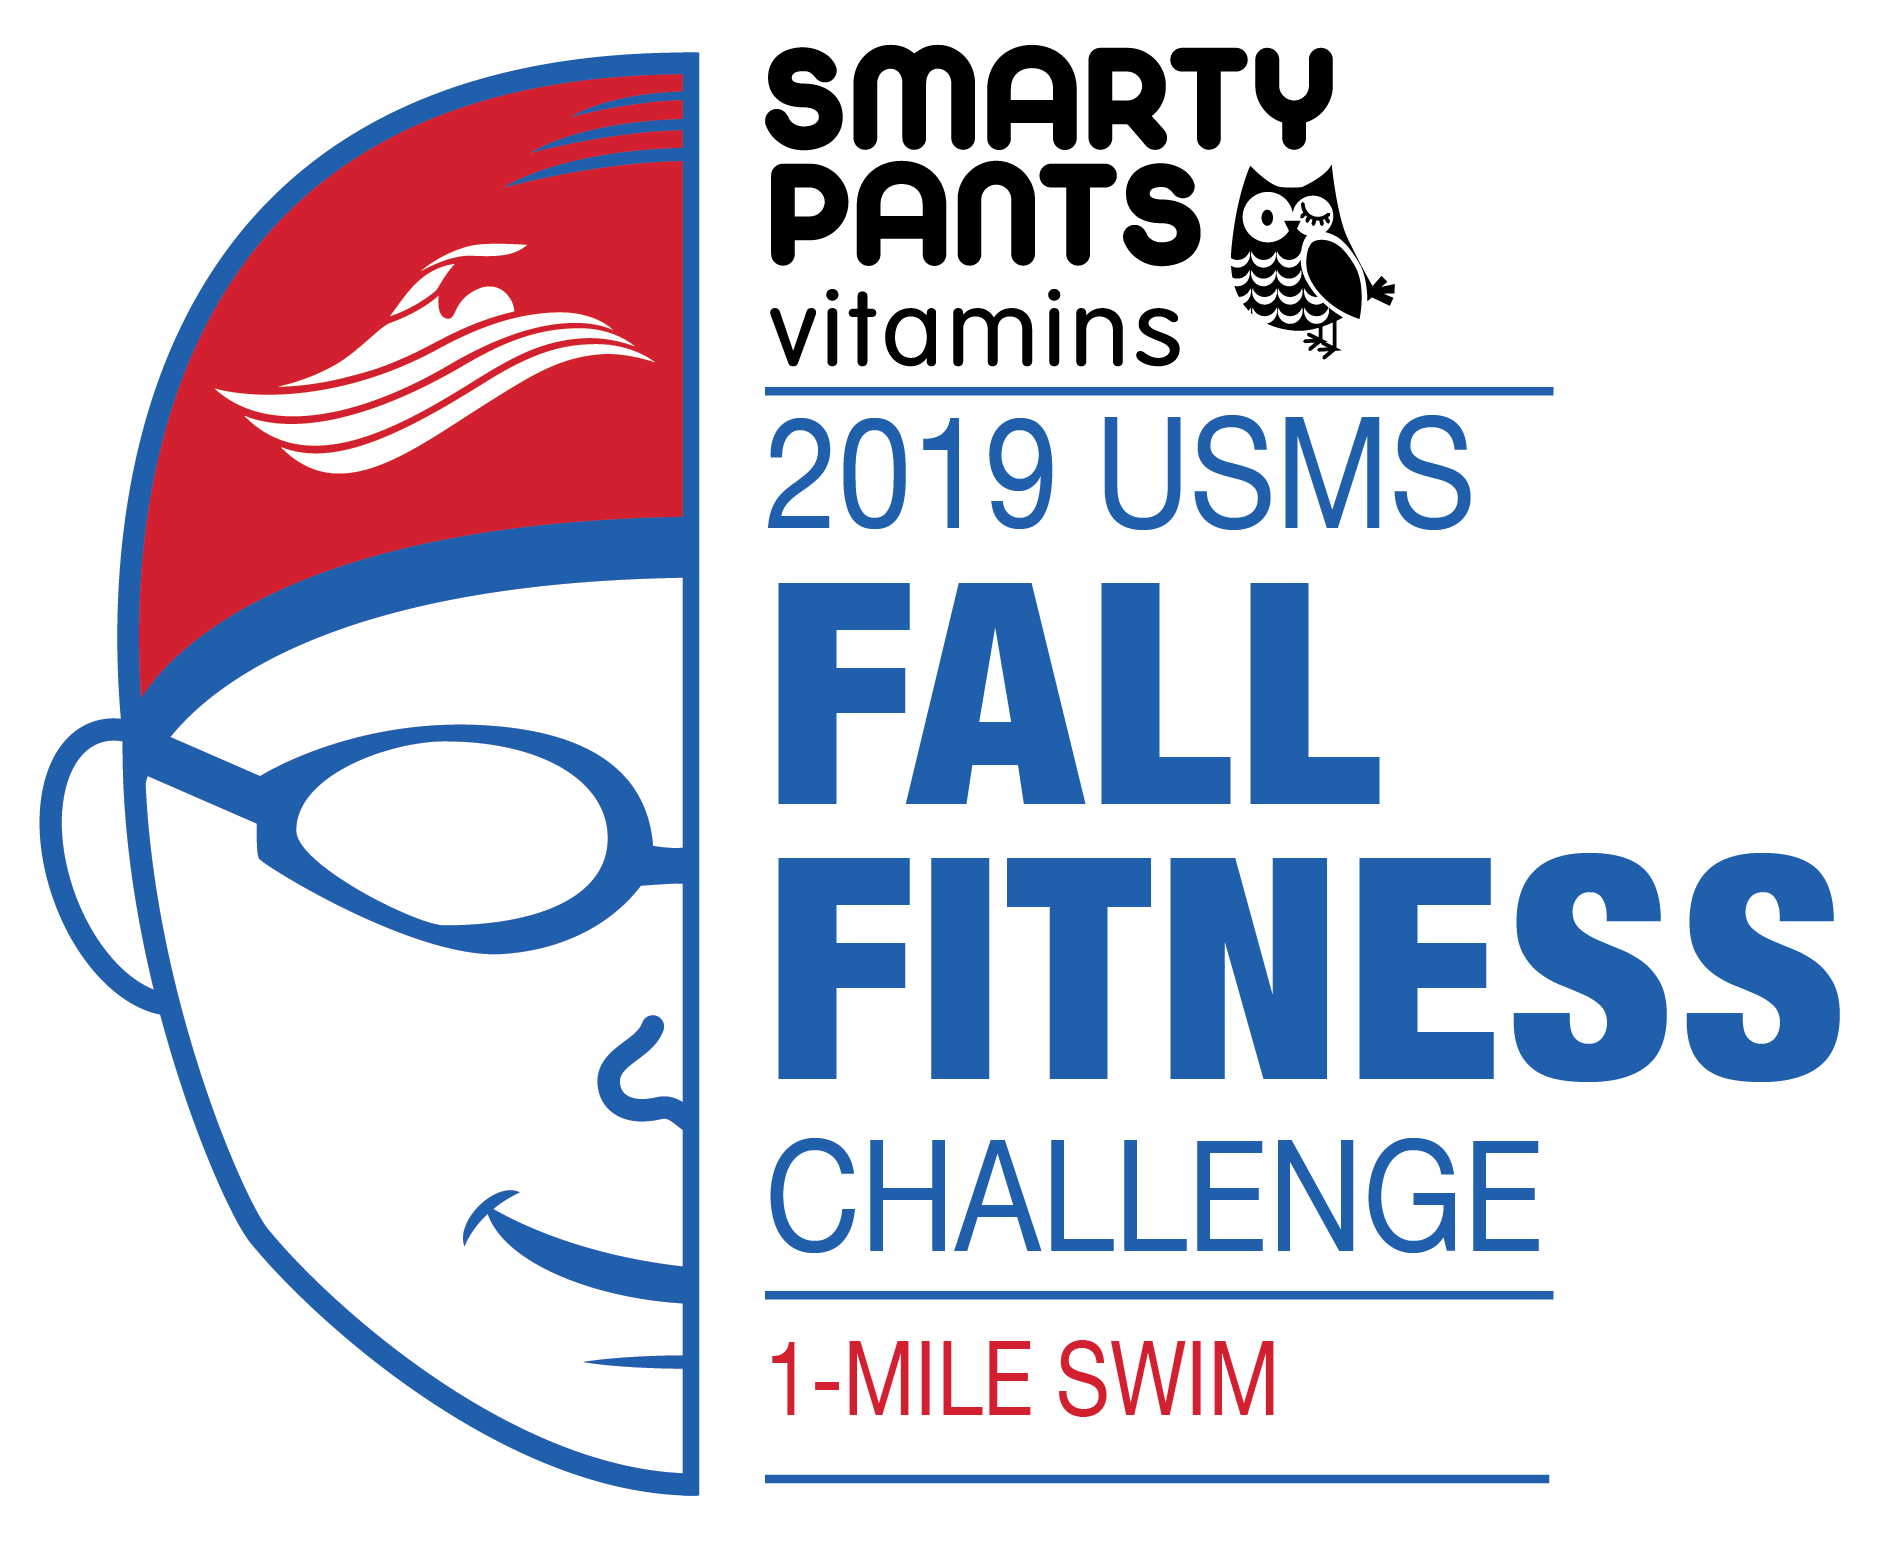 f604c992342 Smarty Pants 2019 USMS Fall Fitness Challenge 1-Mile Swim Color Logo